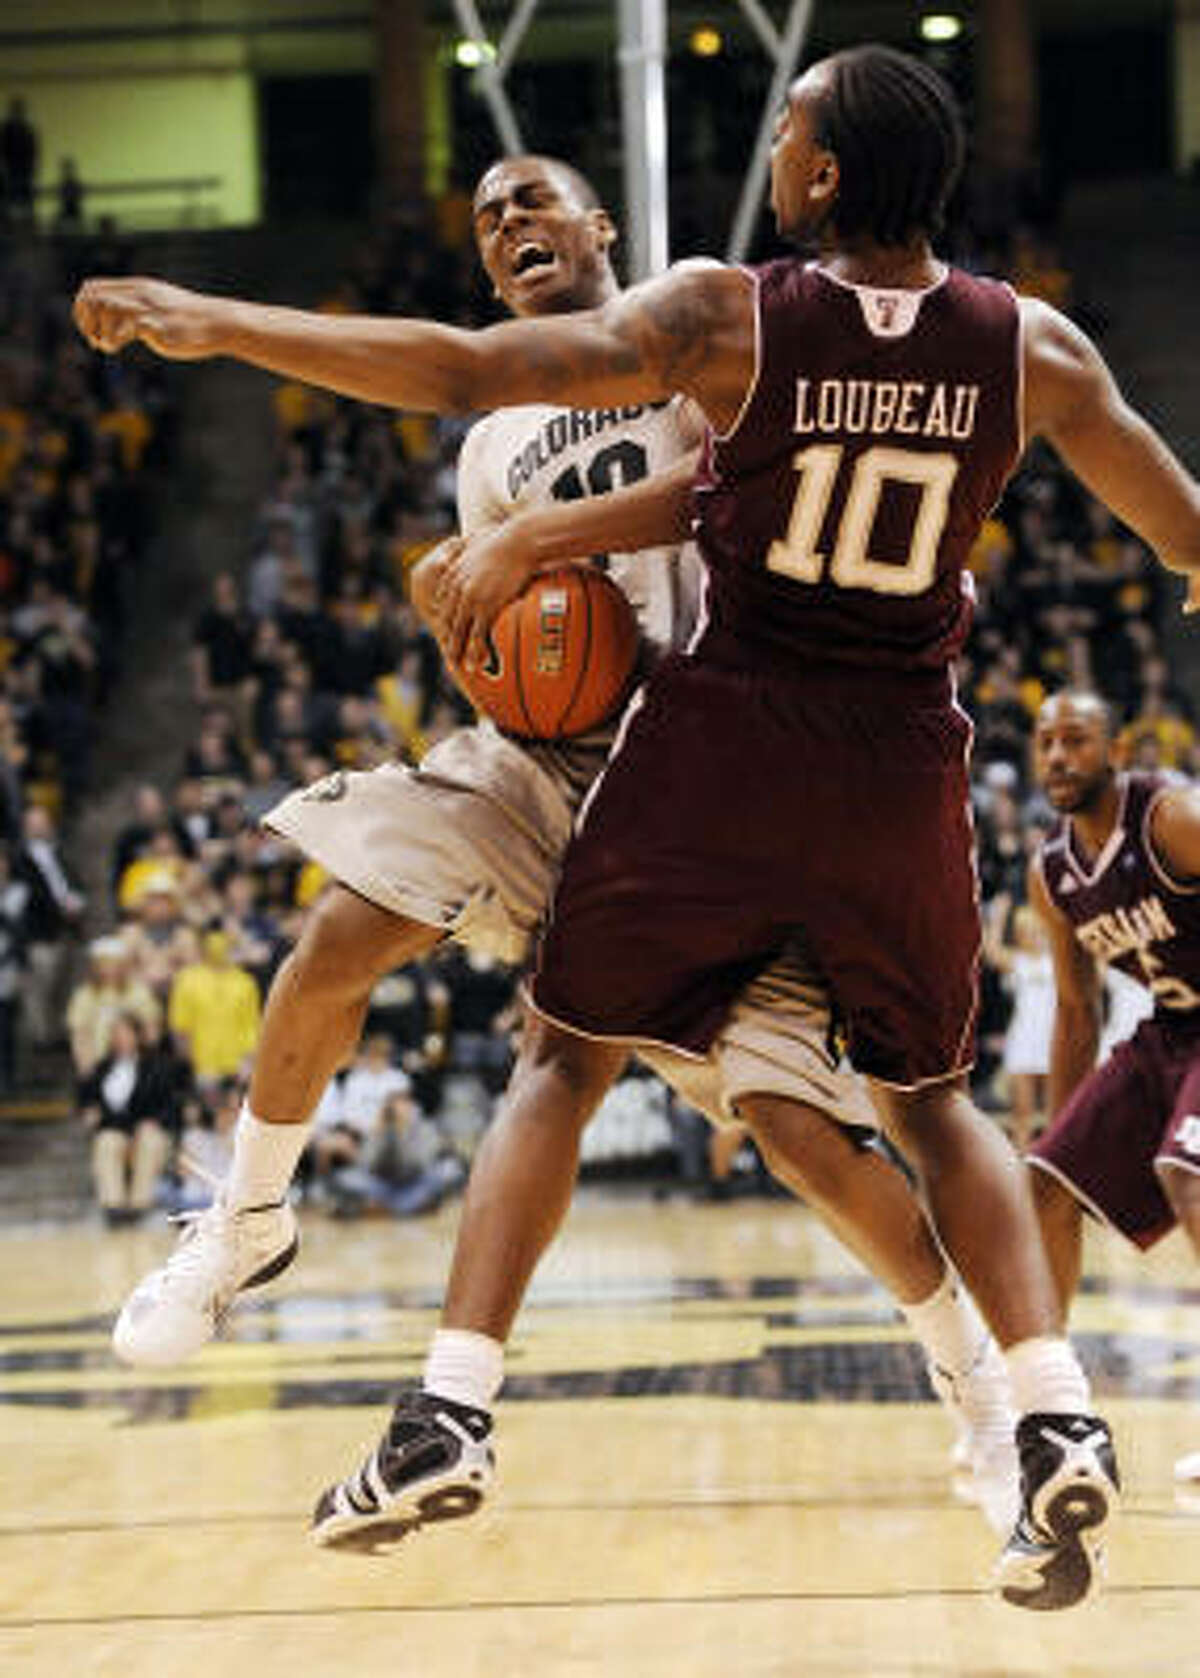 Colorado guard Alec Burks, left, is fouled by Texas A&M forward David Loubeau during the second half. Burks scored a game-high 24 points in a losing effort.